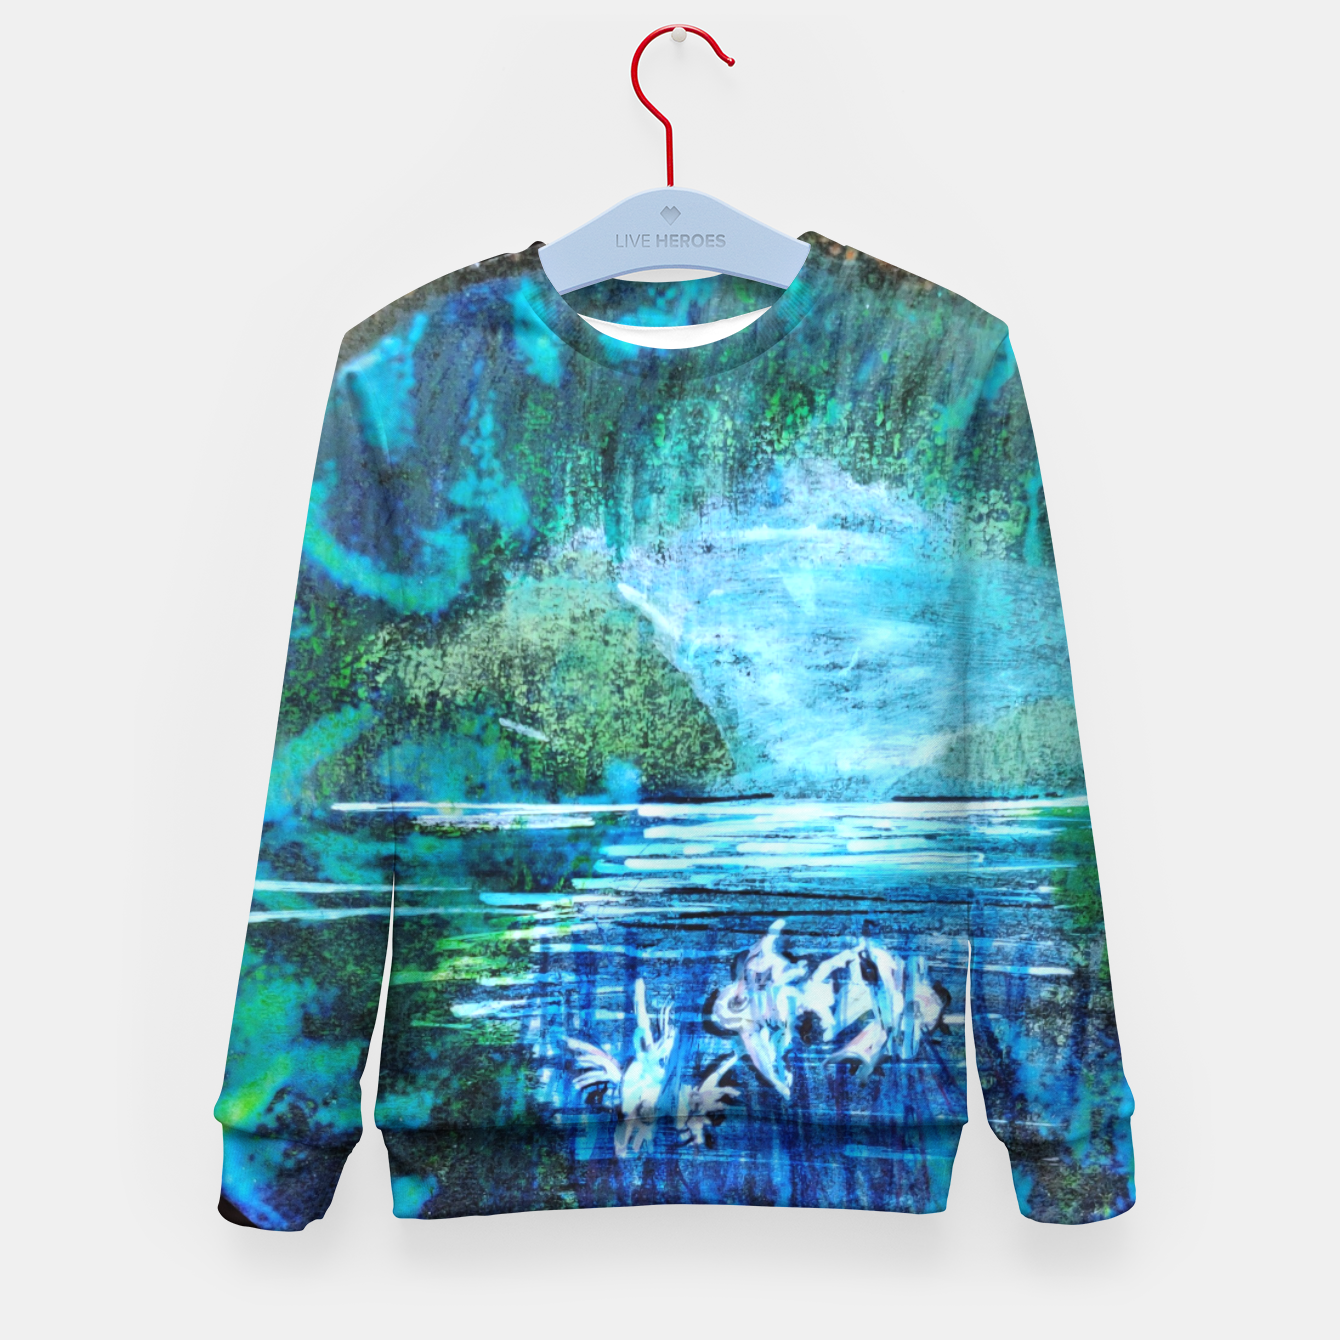 Image of lost and found world 2 brain art for paratissima 19 Yulia A Korneva mri immage Kid's sweater - Live Heroes